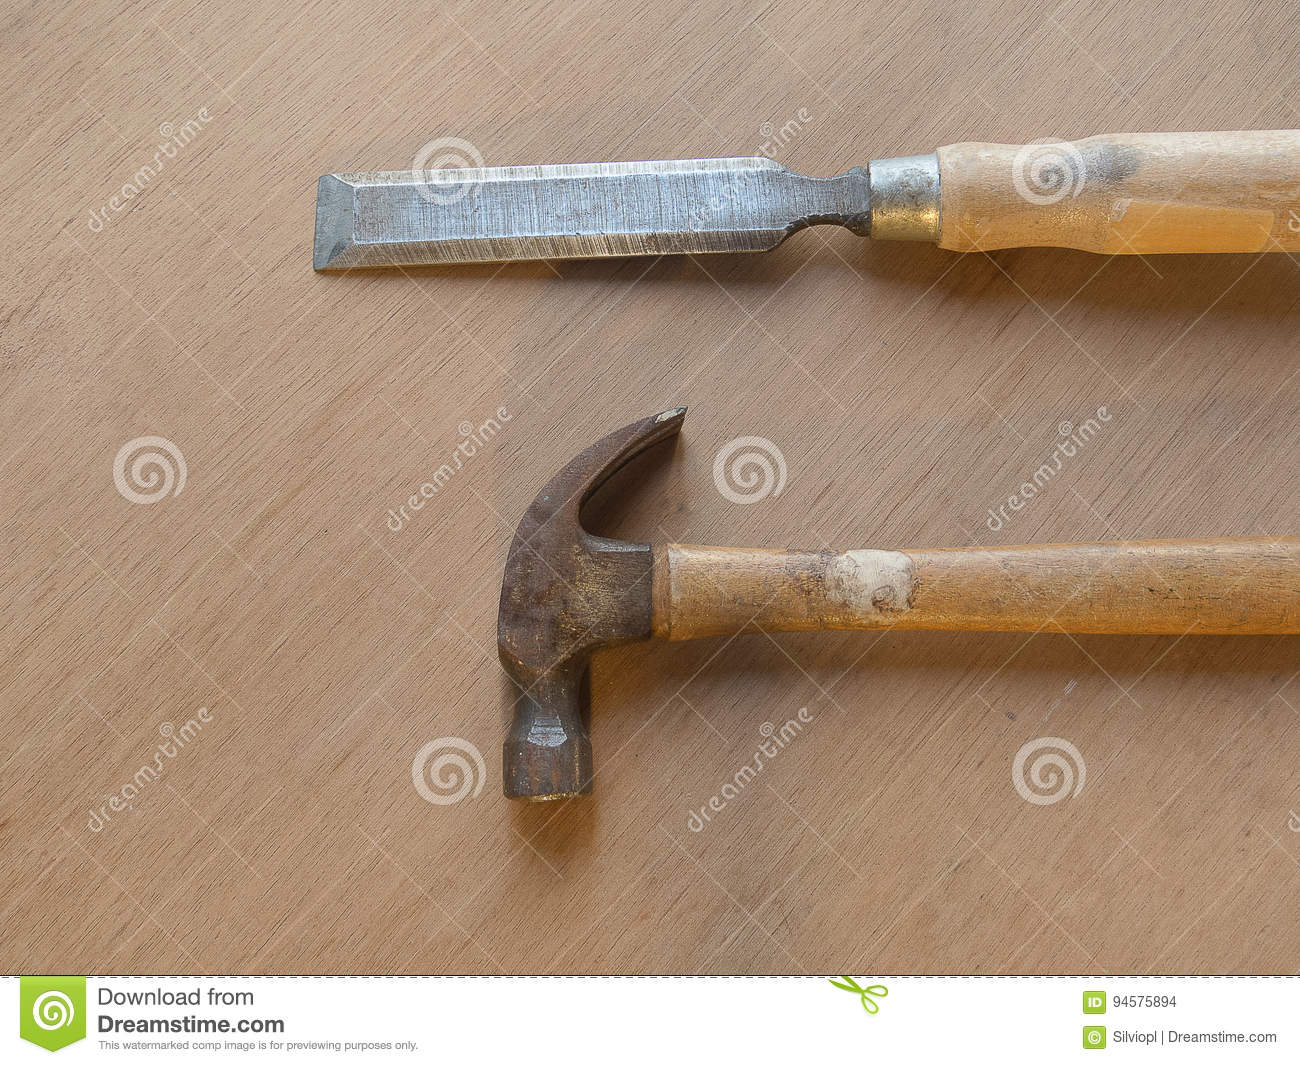 Hammer and chisel on wooden table background